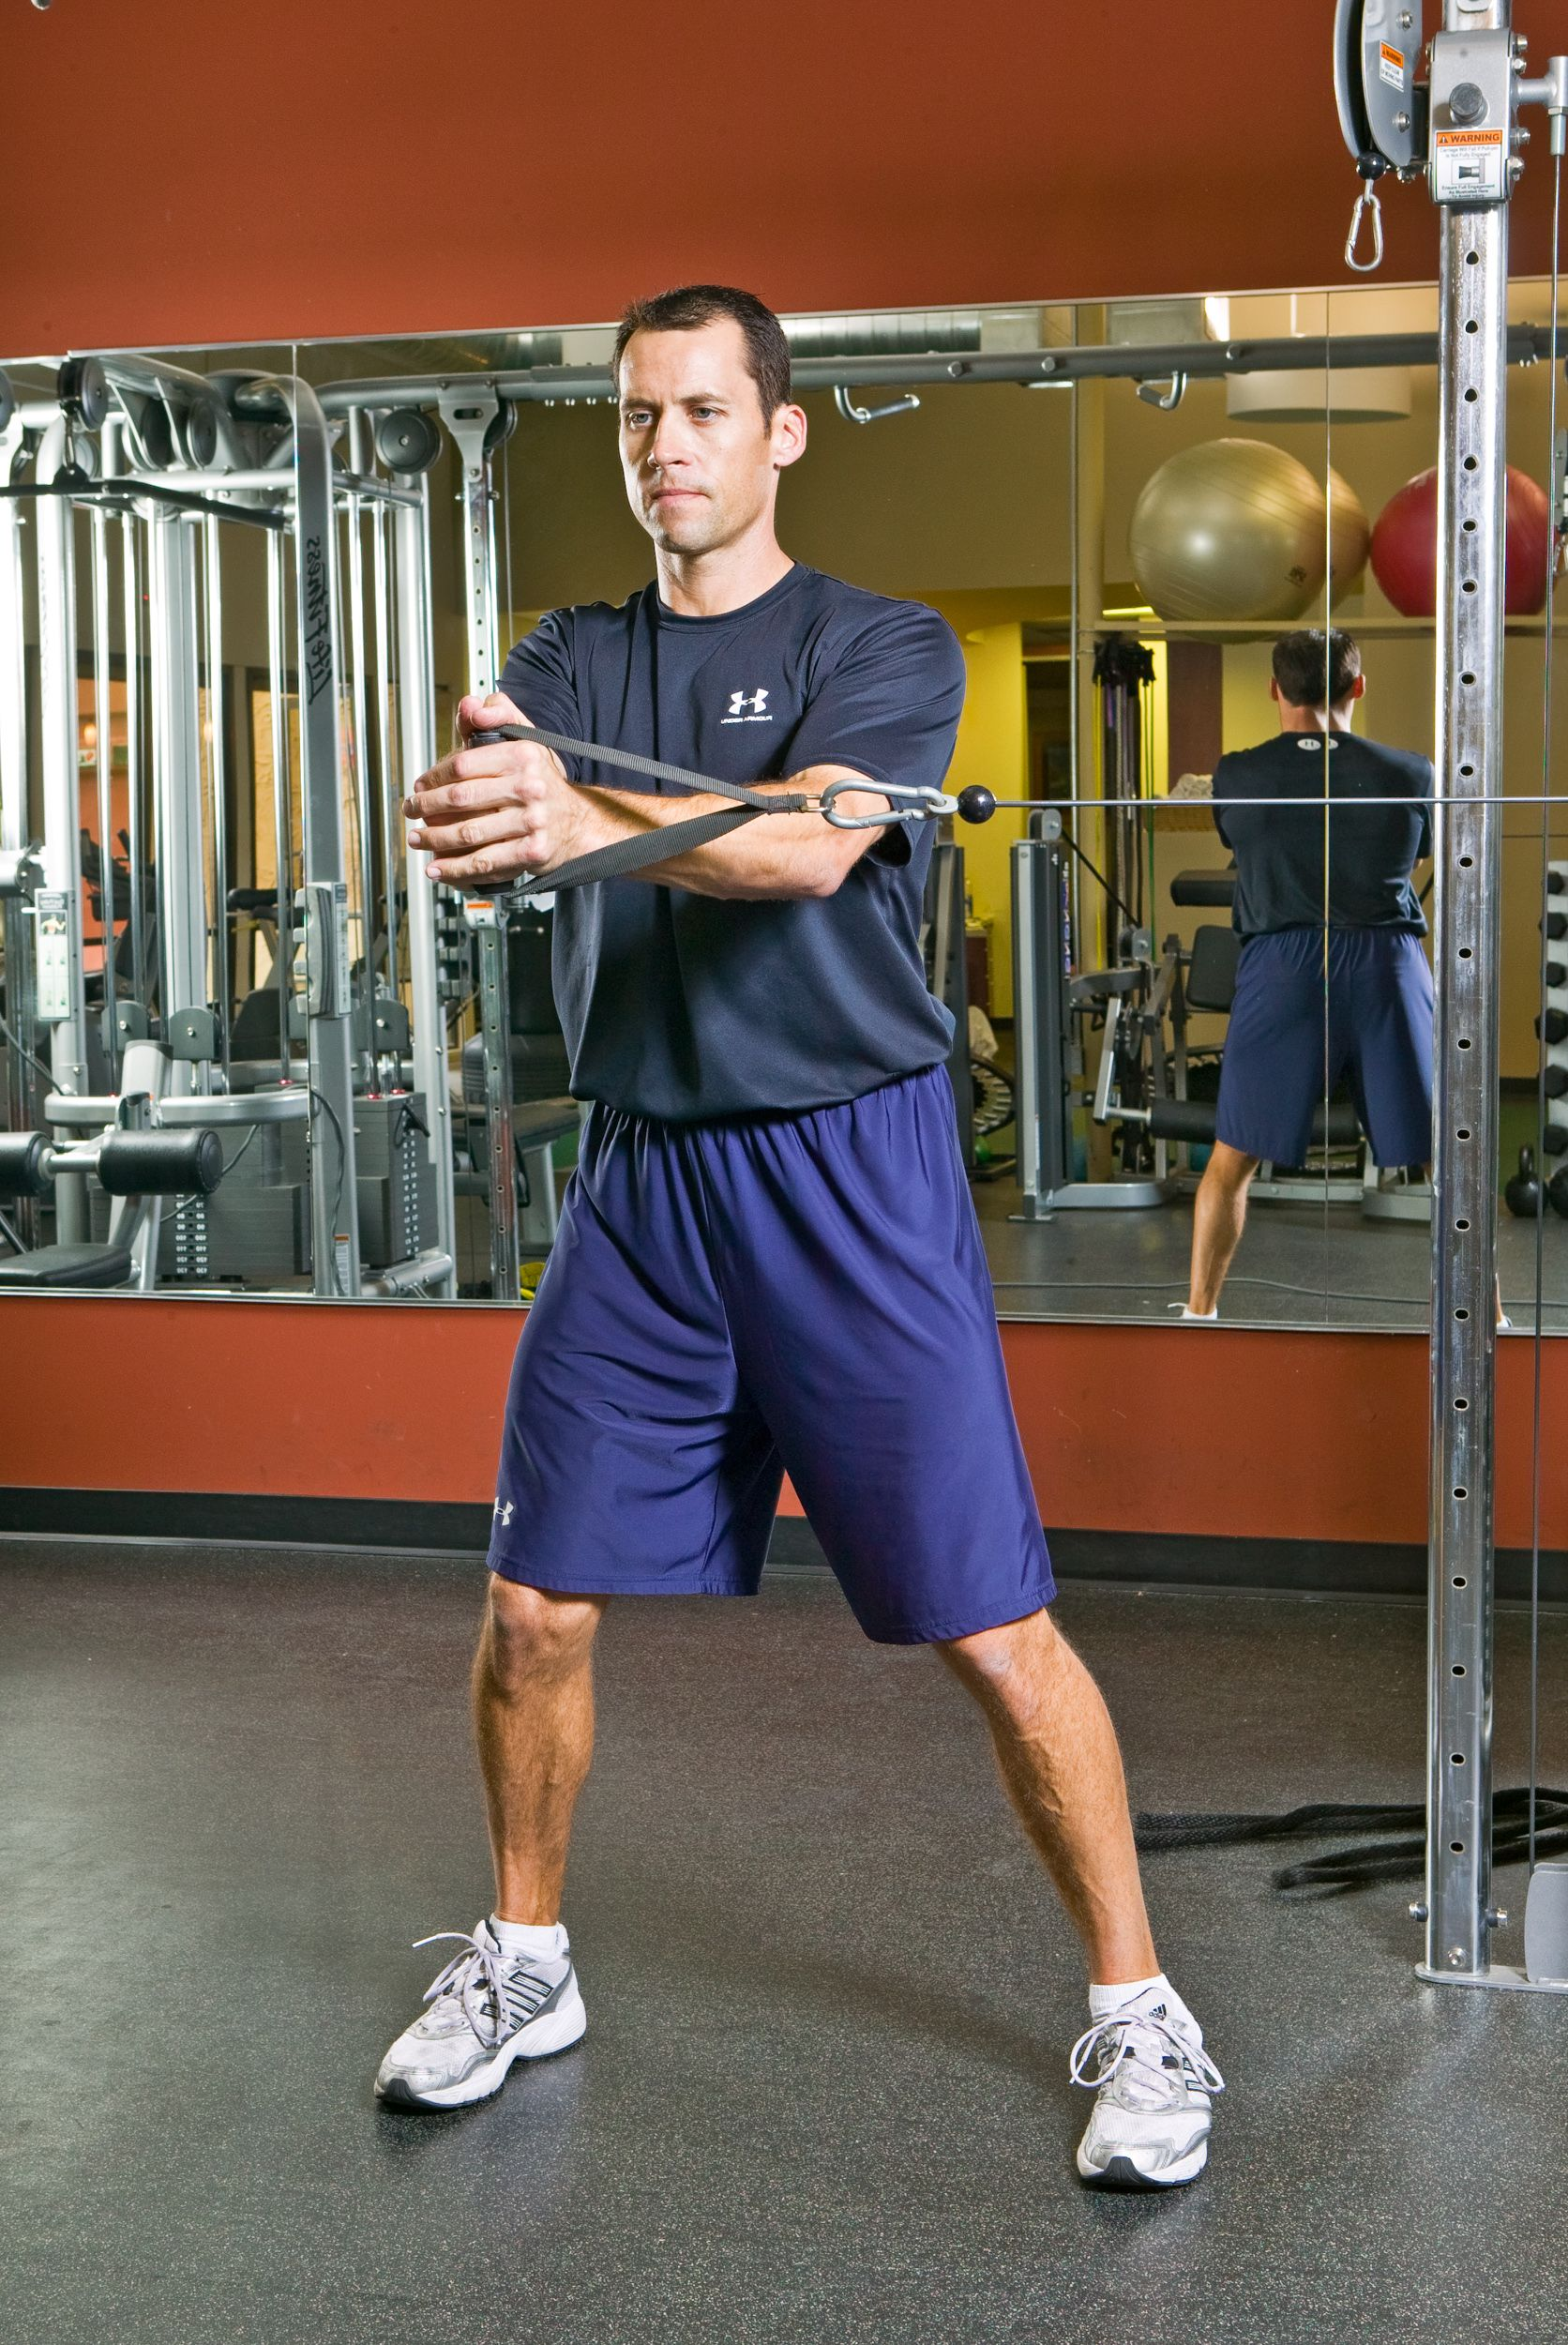 Pin On Sports Performance Exercises